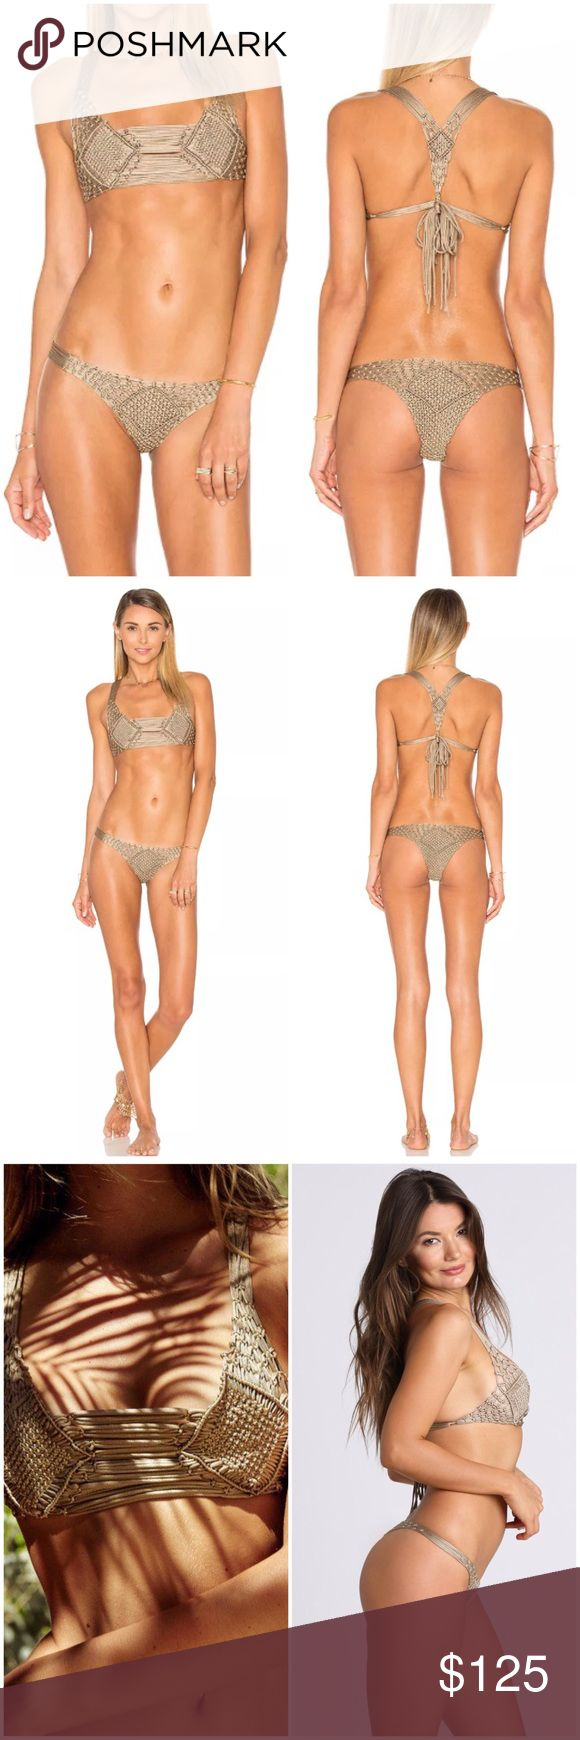 INDAH CROCHET SKIMPY BIKINI SET ACACIA FRANKIES Gorgeous shimmery beige-gold bikini set from INDAH, with long tie accents and lux braided details. Color is true to photos and very flattering. New with tags. Size small is best for US 4. Open to offers close to list price! Indah Swim Bikinis